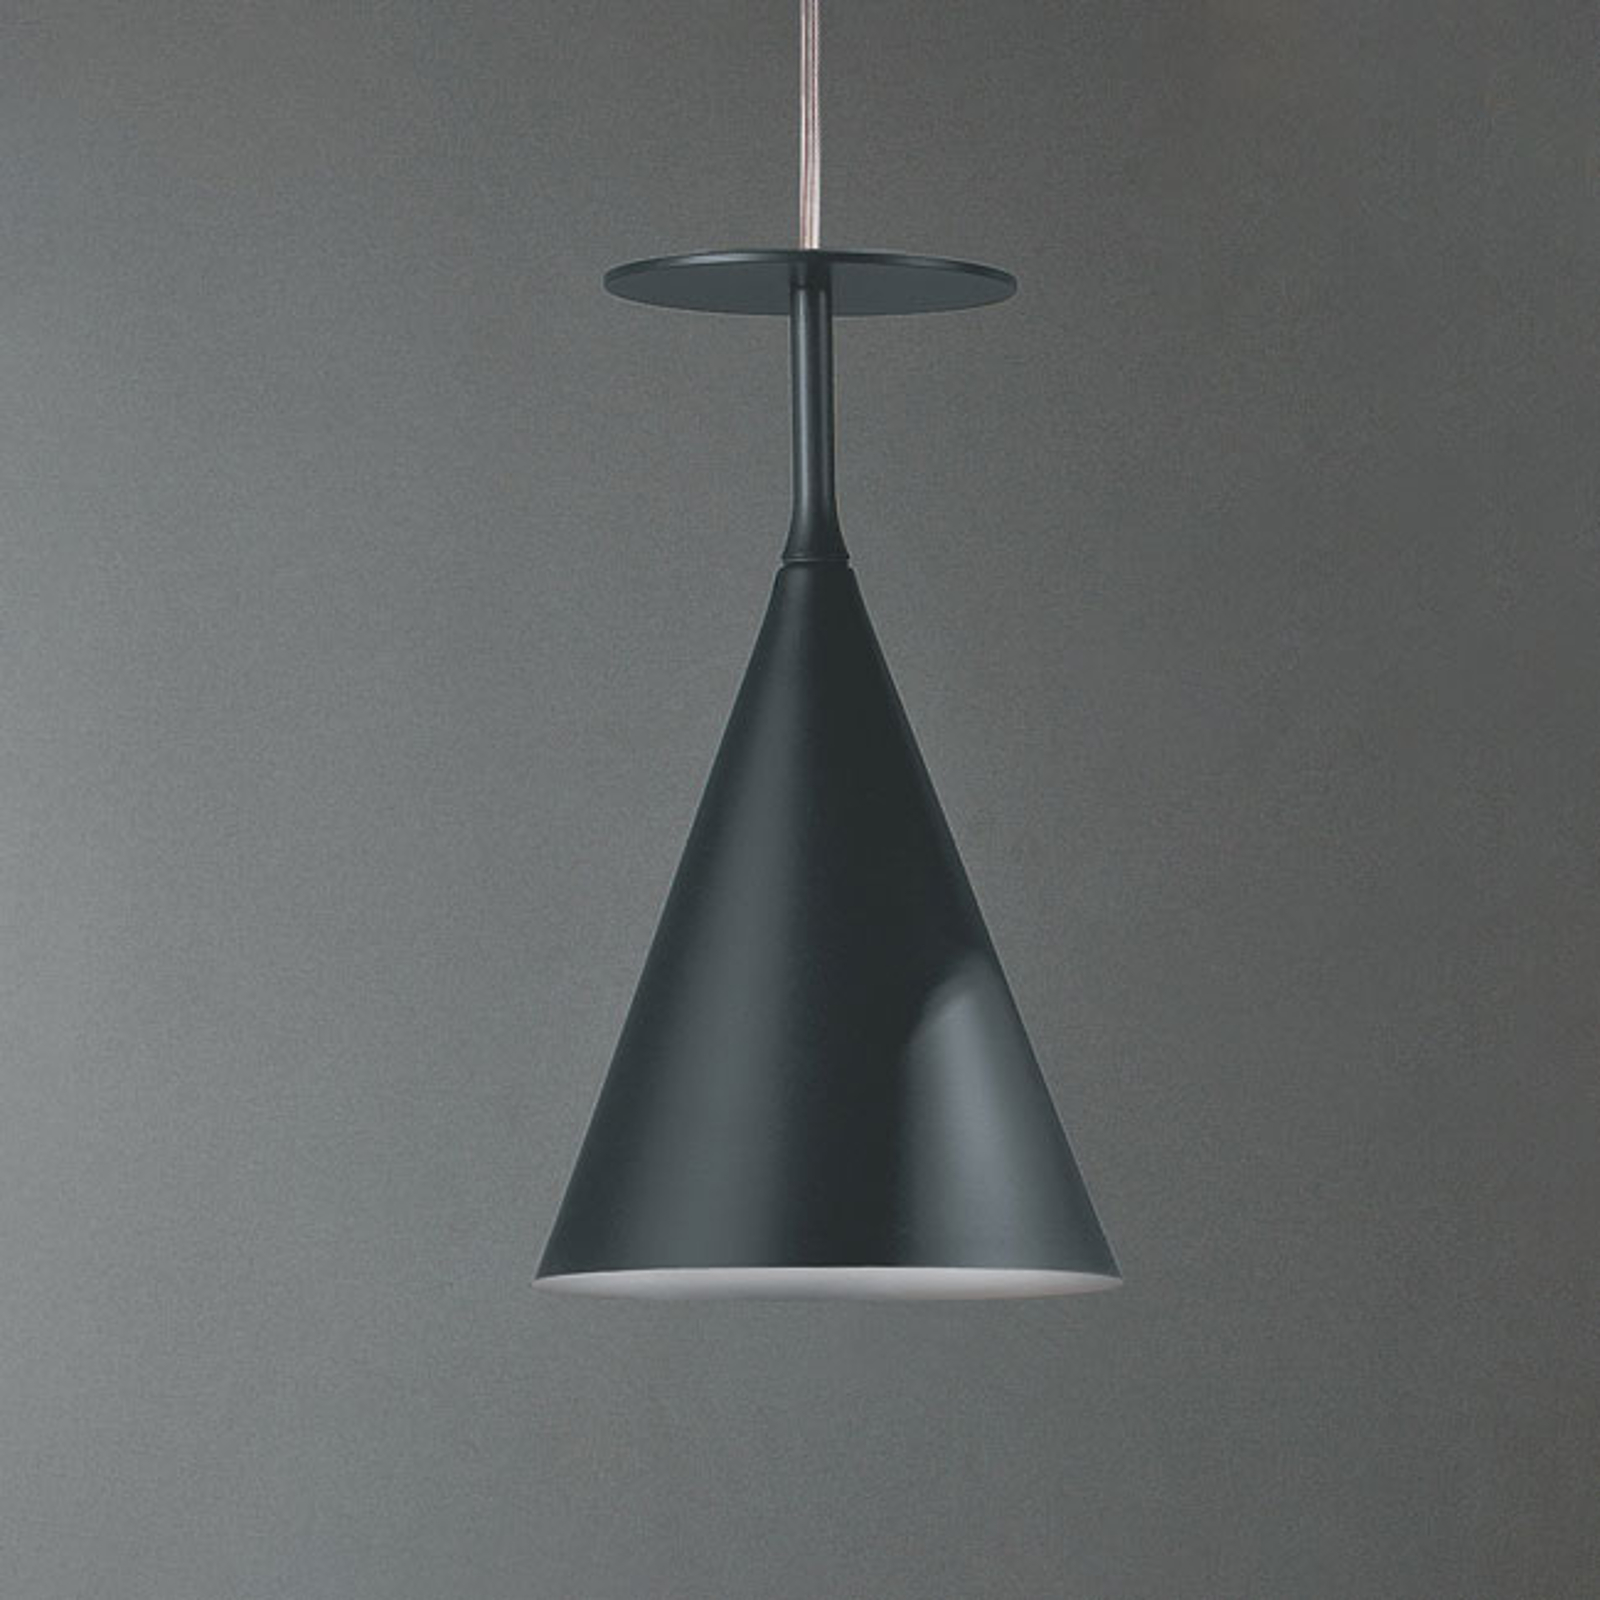 Modo Luce ABC Single B hanglamp loodgrijs